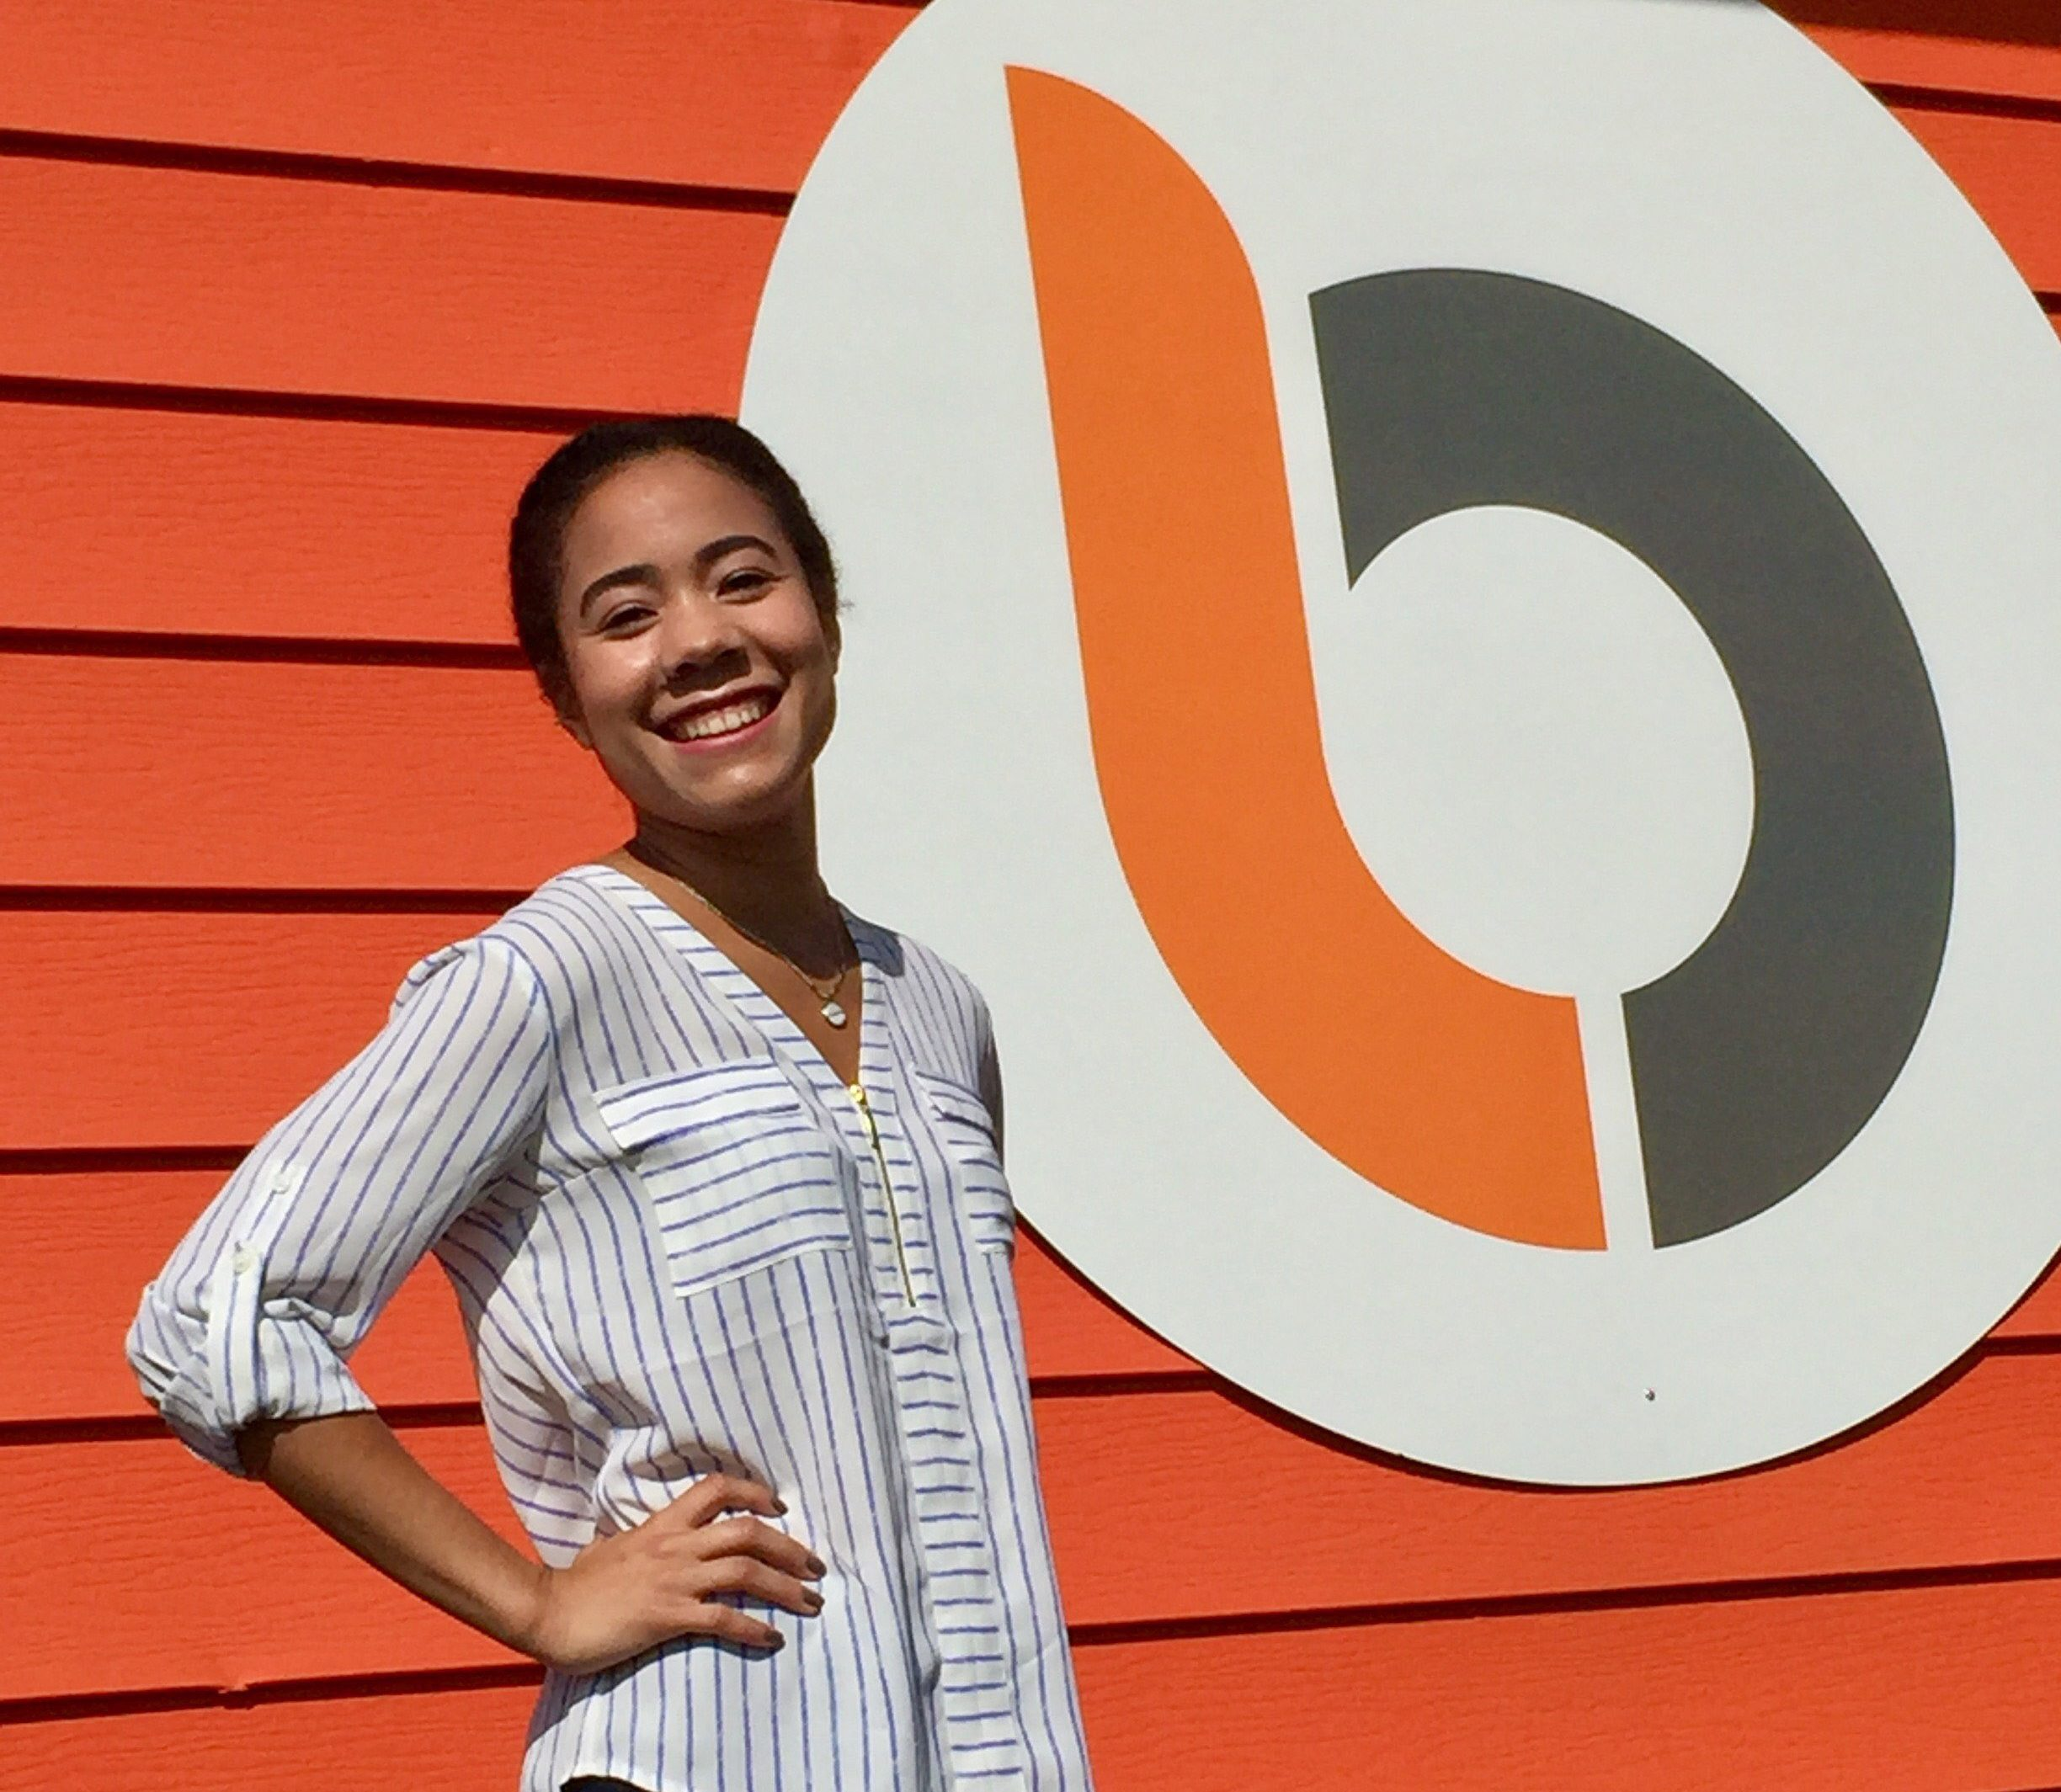 Bridget standing in front of orange wall with Burkhart Marketing logo on it